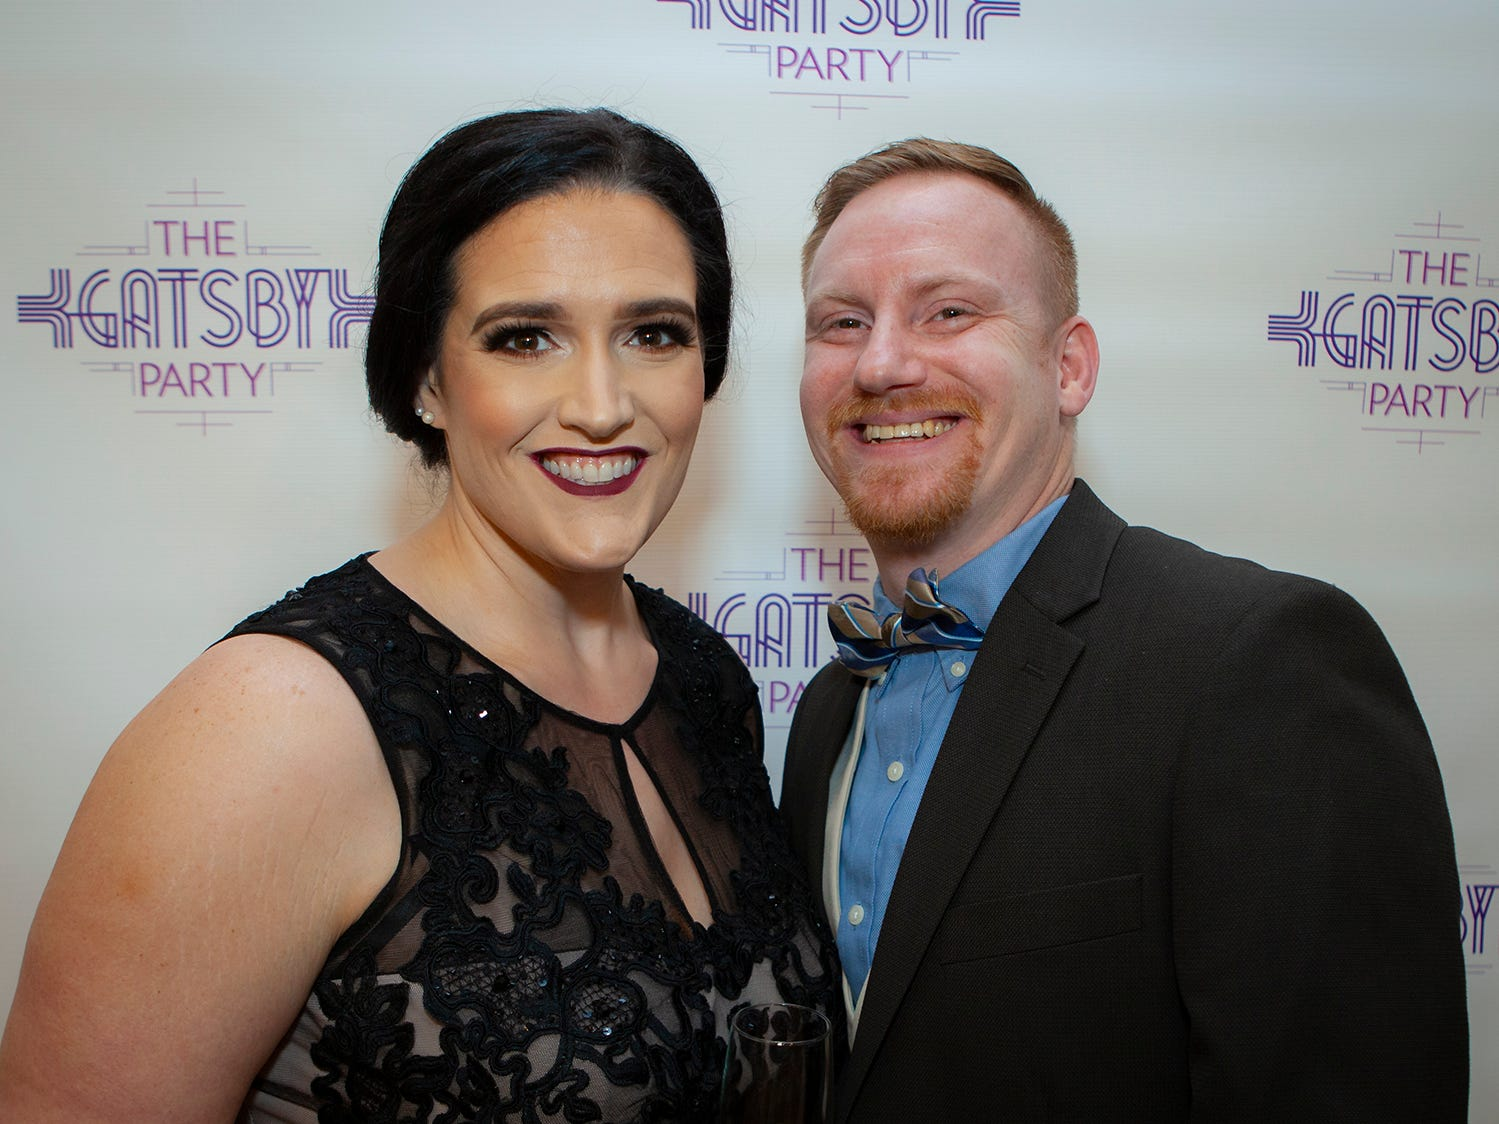 Serena and Donovan Lack at The Gatsby Party, hosted by the Alzheimer's Association at The View at Fountains Saturday, March 16, 2019.